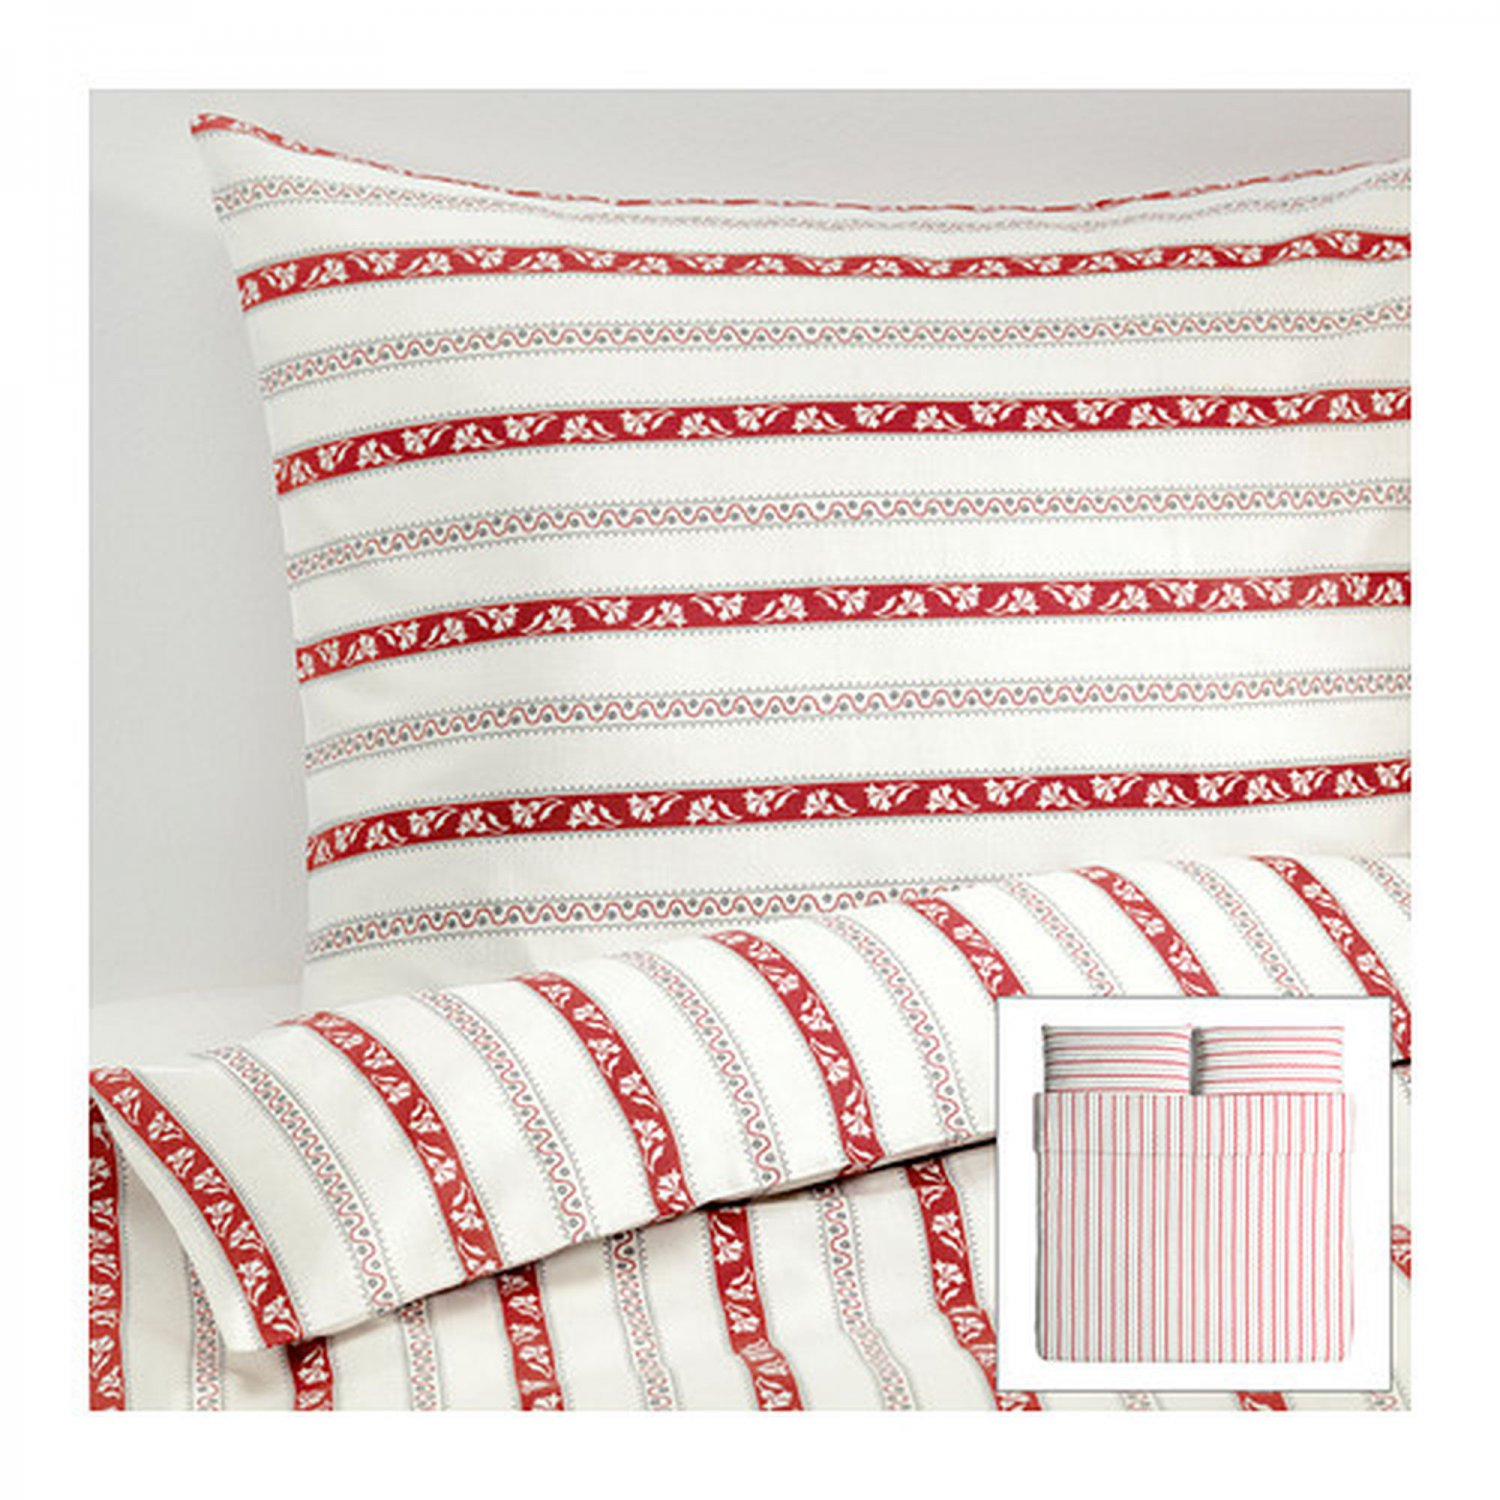 IKEA P�RLHYACINT KING Parlhyacint DUVET COVER Set STRIPES Red Gray Yellow Yarn Dyed SOFT